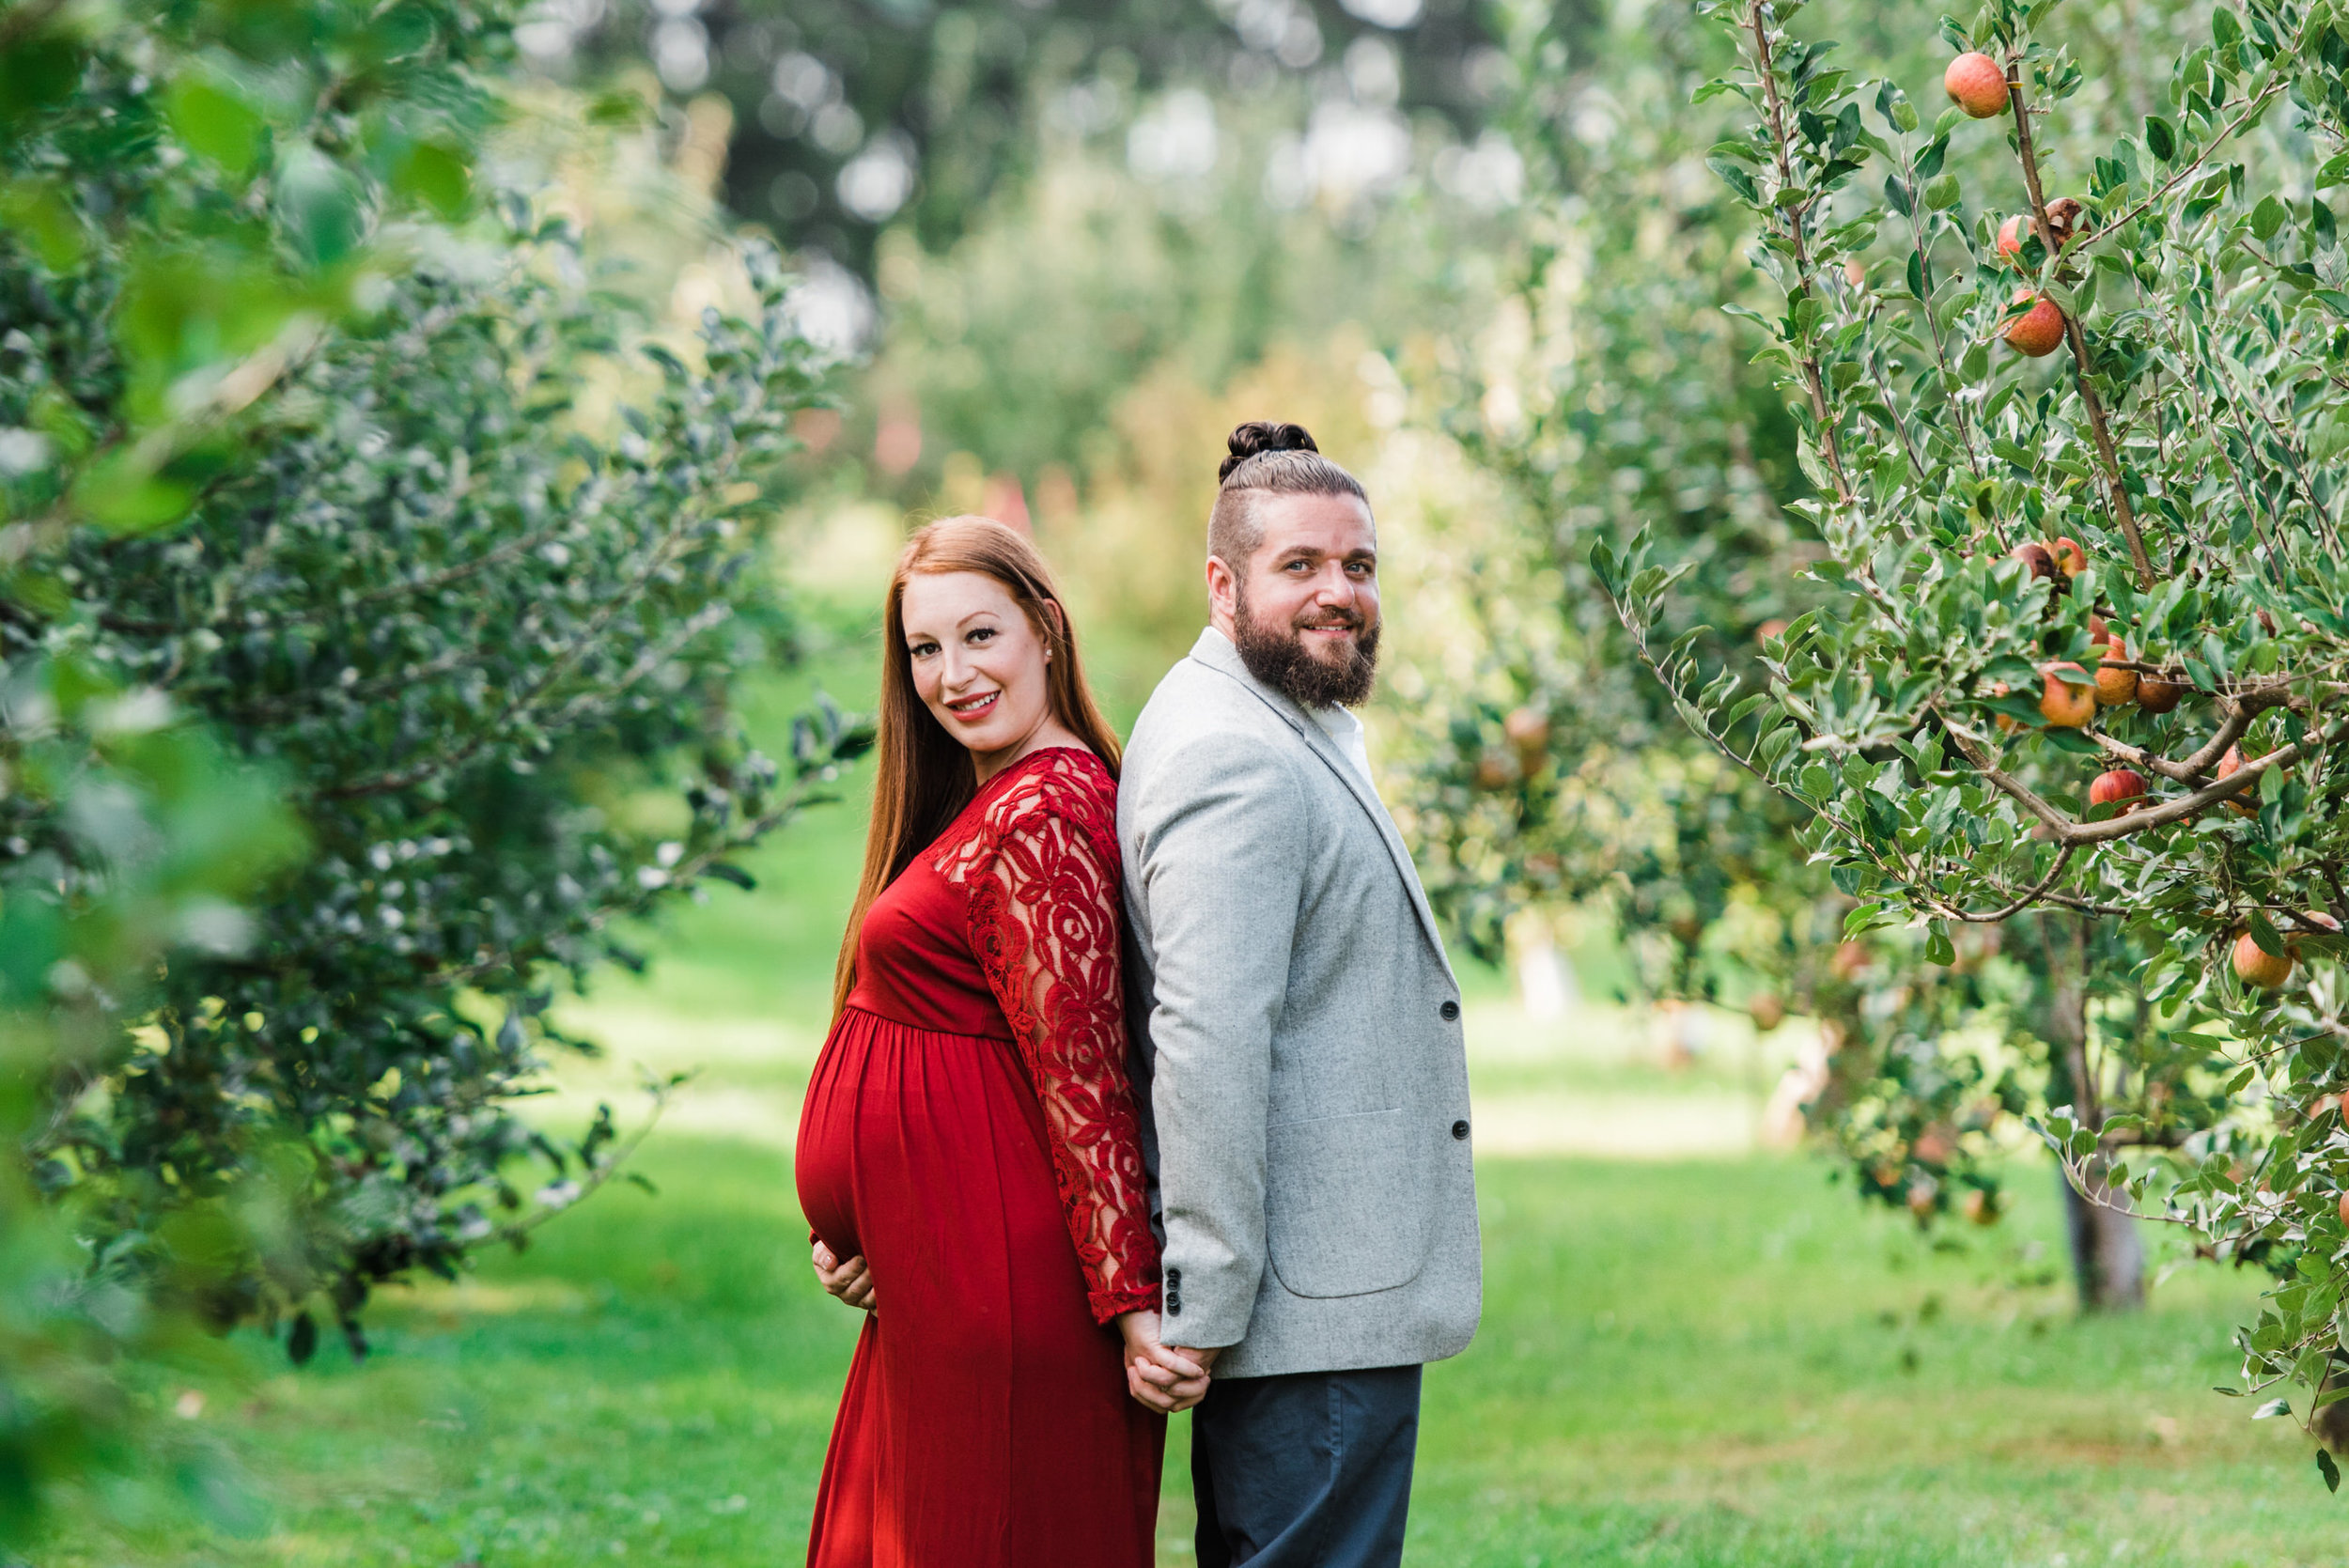 pittsburgh-maternity-photographers-winery-apple-orchard-session_27.jpg